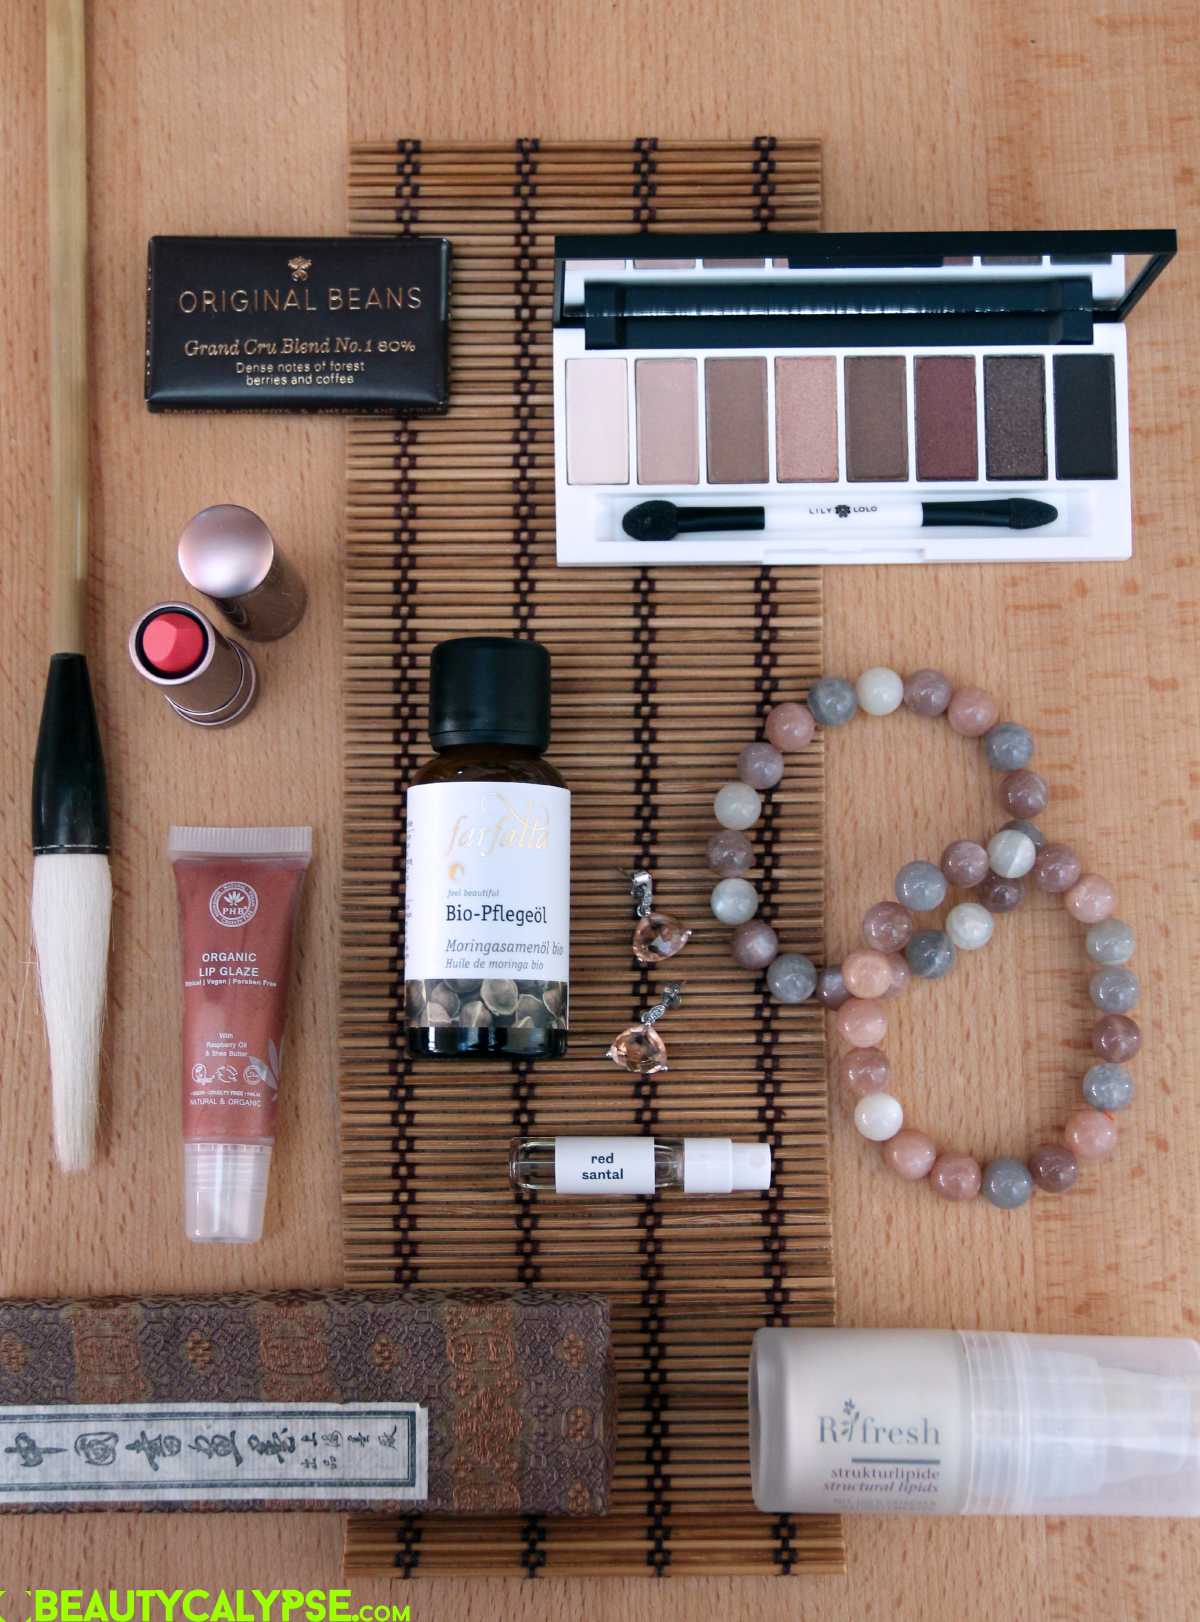 Ringana Refresh structural lipids, Farfalla Organic moringa seed oil, Lily Lolo eye shadow palette in 'pure indulgence', PHB Ethical Beauty organic lip glaze in 'Blossom', 100% Pure cacao matt lipstick in 'prickly pear'